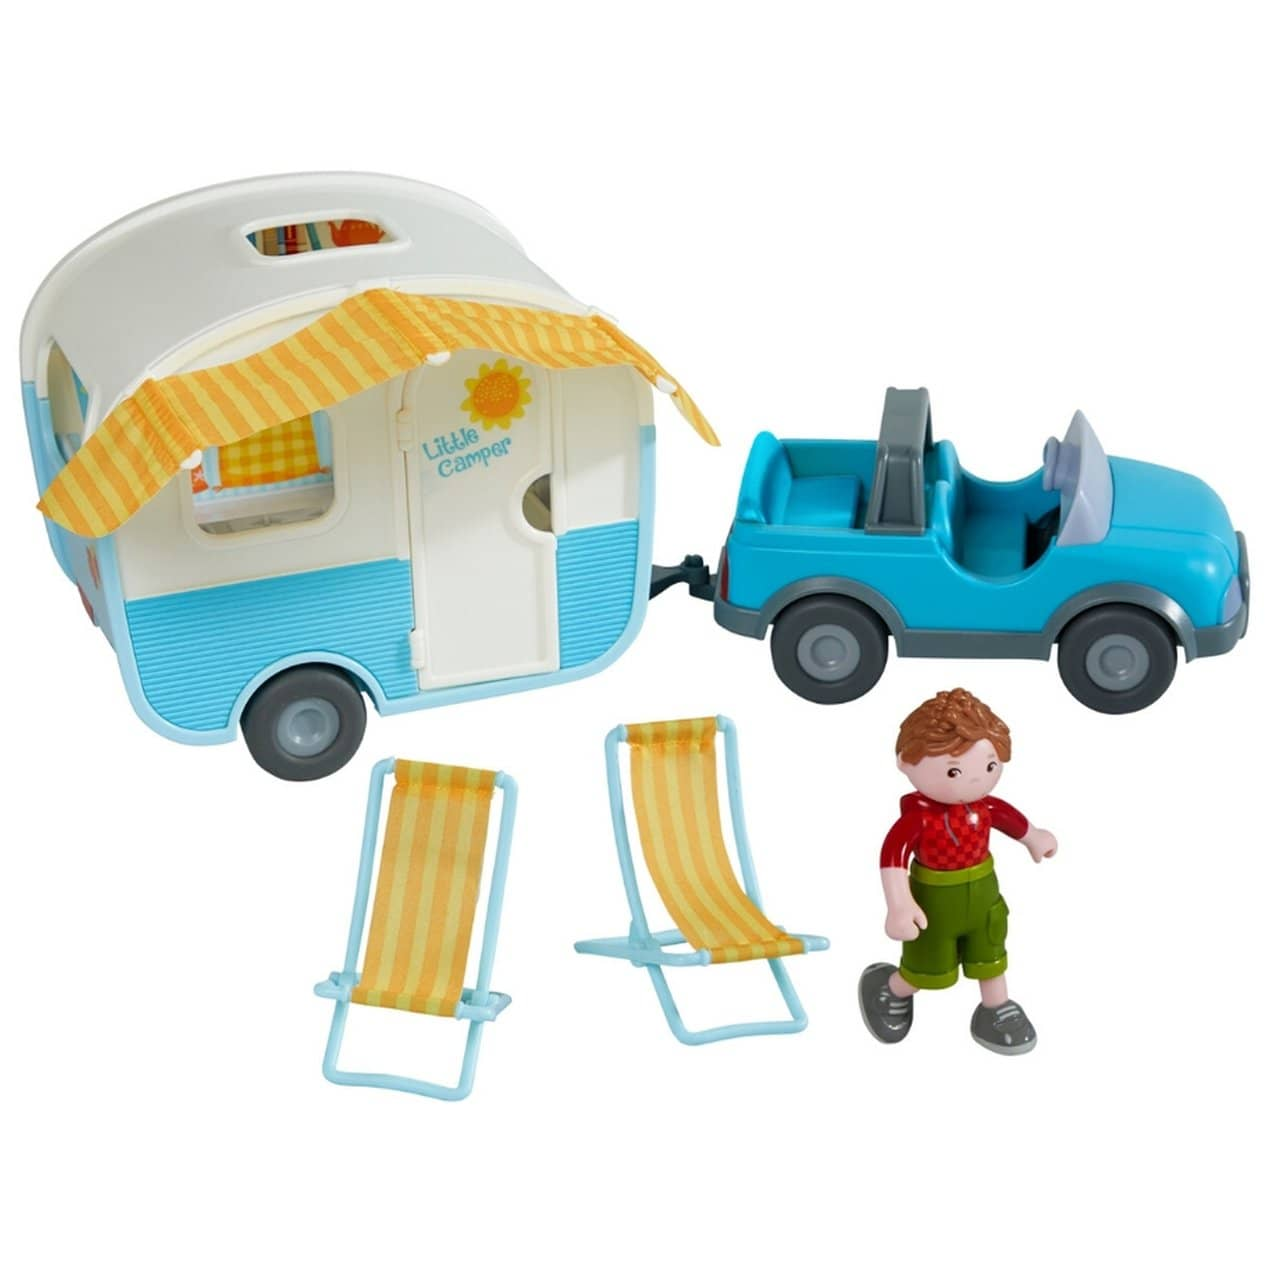 LITTLE FRIENDS CAMPER PLAY SET